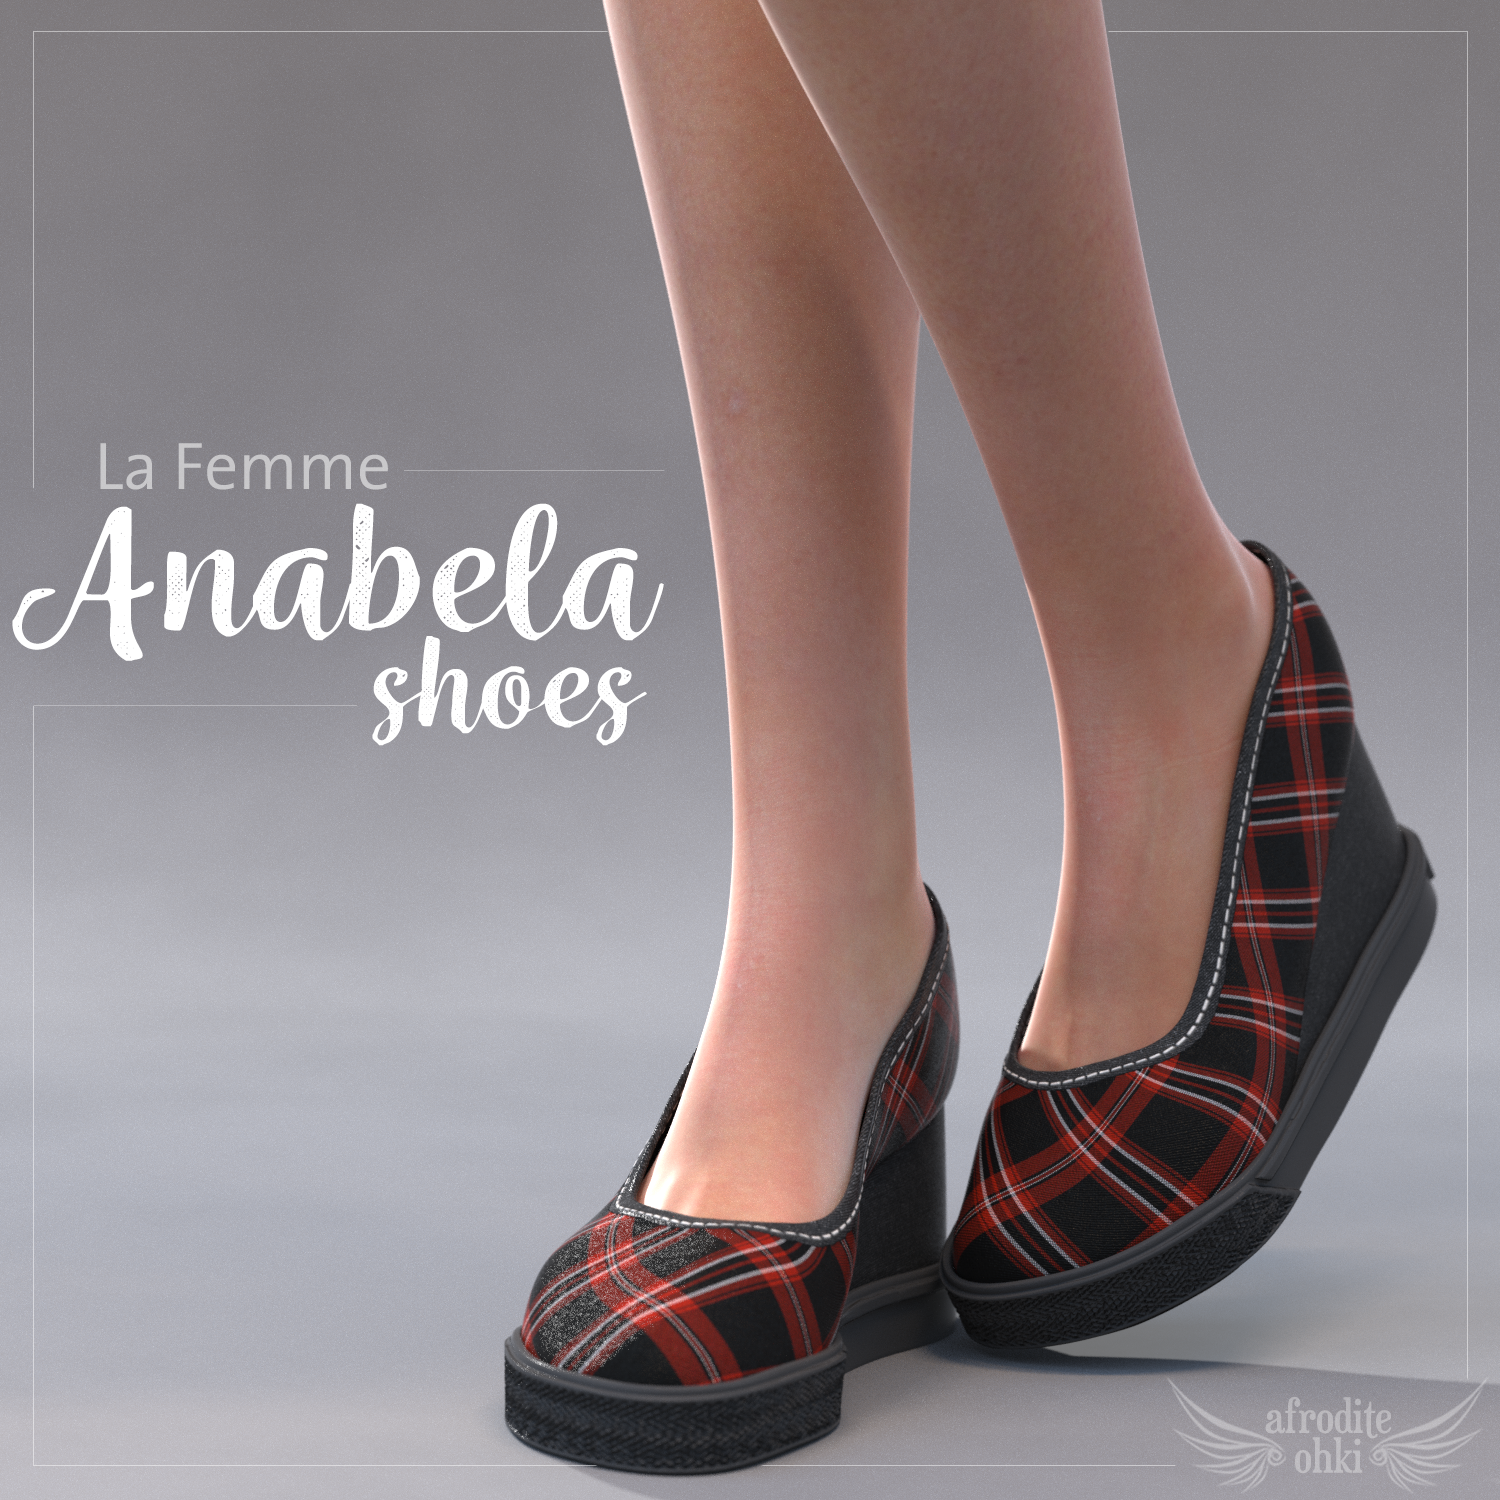 Anabela Shoes for La Femme by Afrodite-Ohki